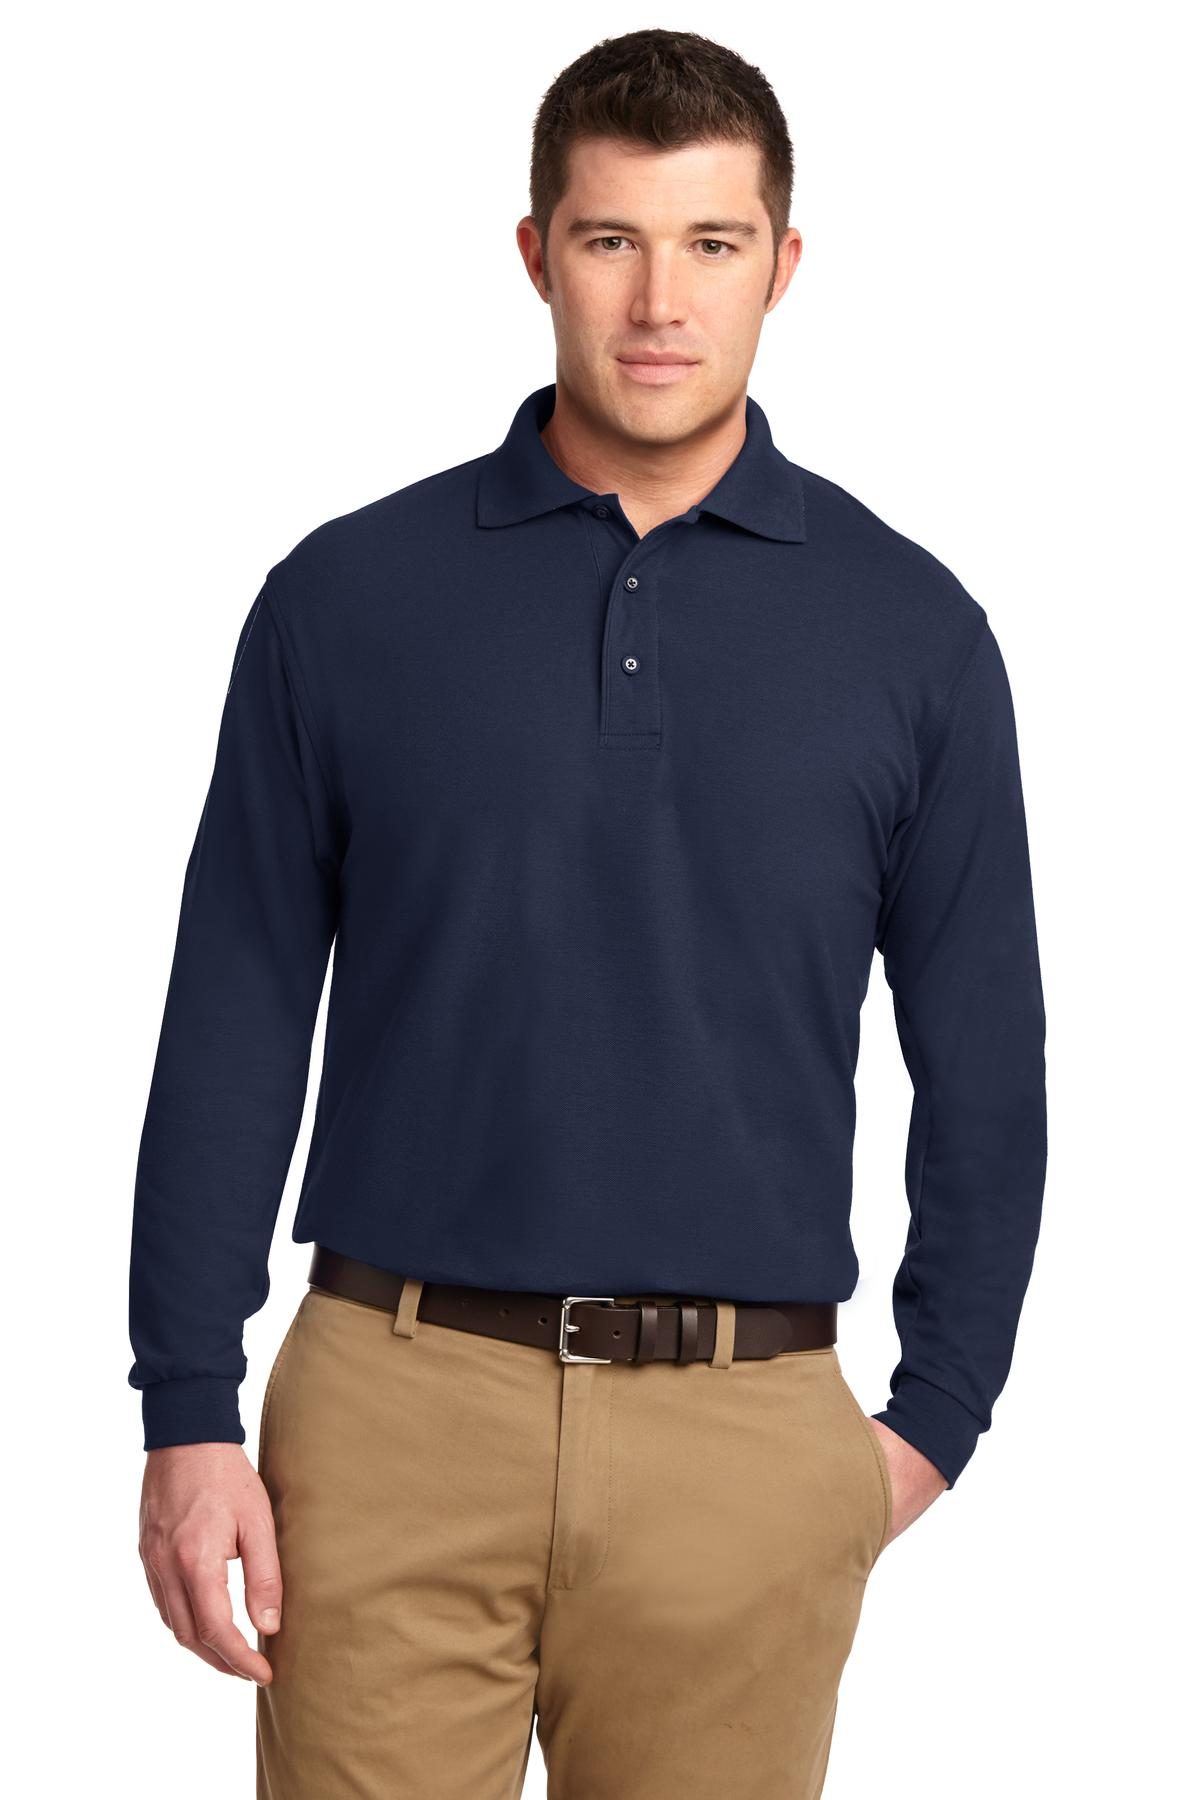 Port Authority Tall Silk Touch Long Sleeve Polo. TLK500LS